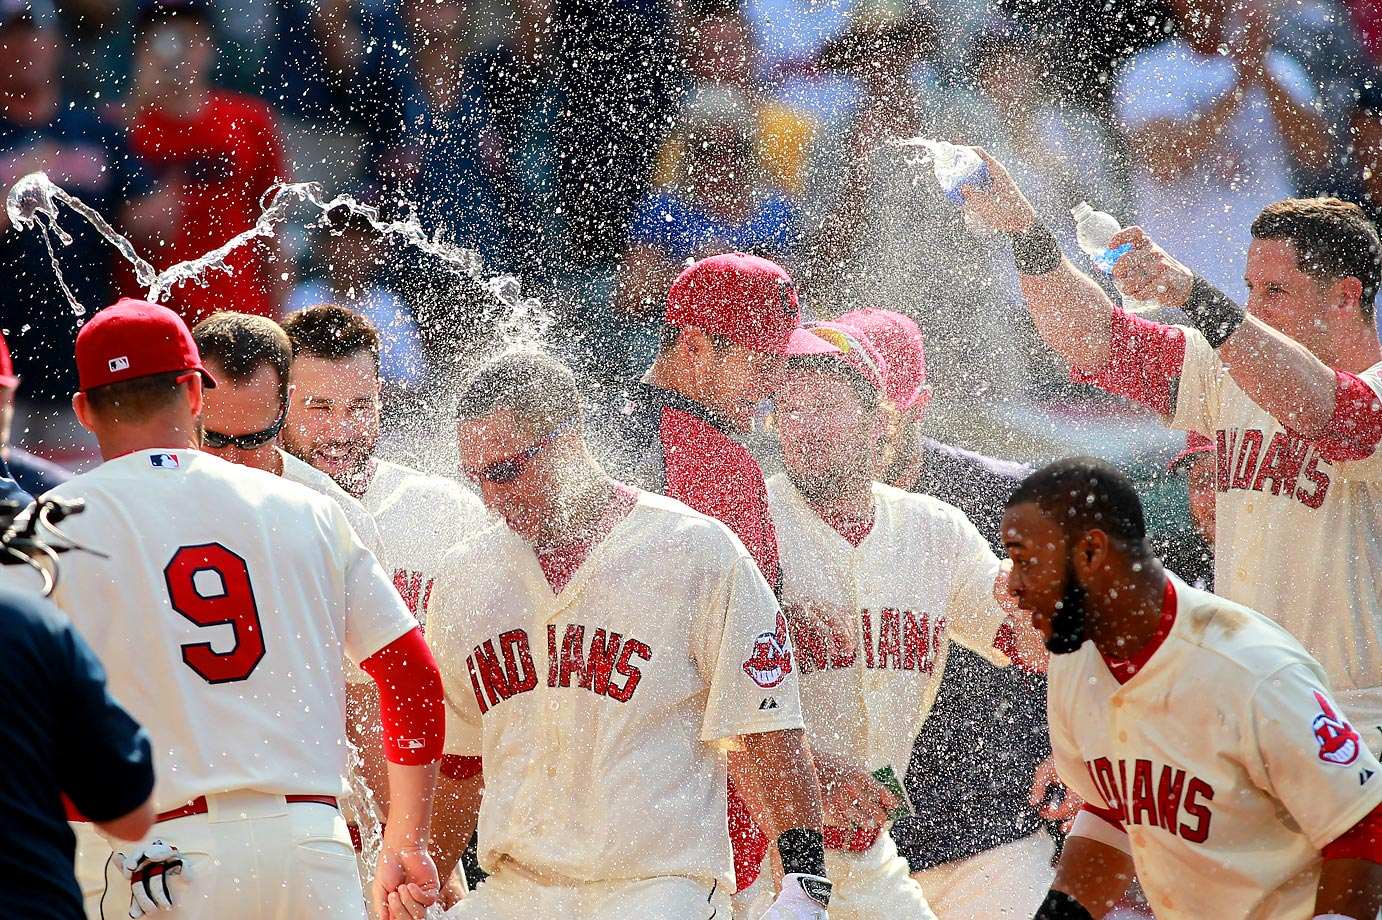 Cleveland Indians' Michael Brantley is hit with water from teammates as he reaches home plate after hitting a game-winning home run in the 12th inning of a baseball game against the Texas Rangers, Sunday Aug. 3, 2014, in Cleveland. The Indians won the game 4-3.